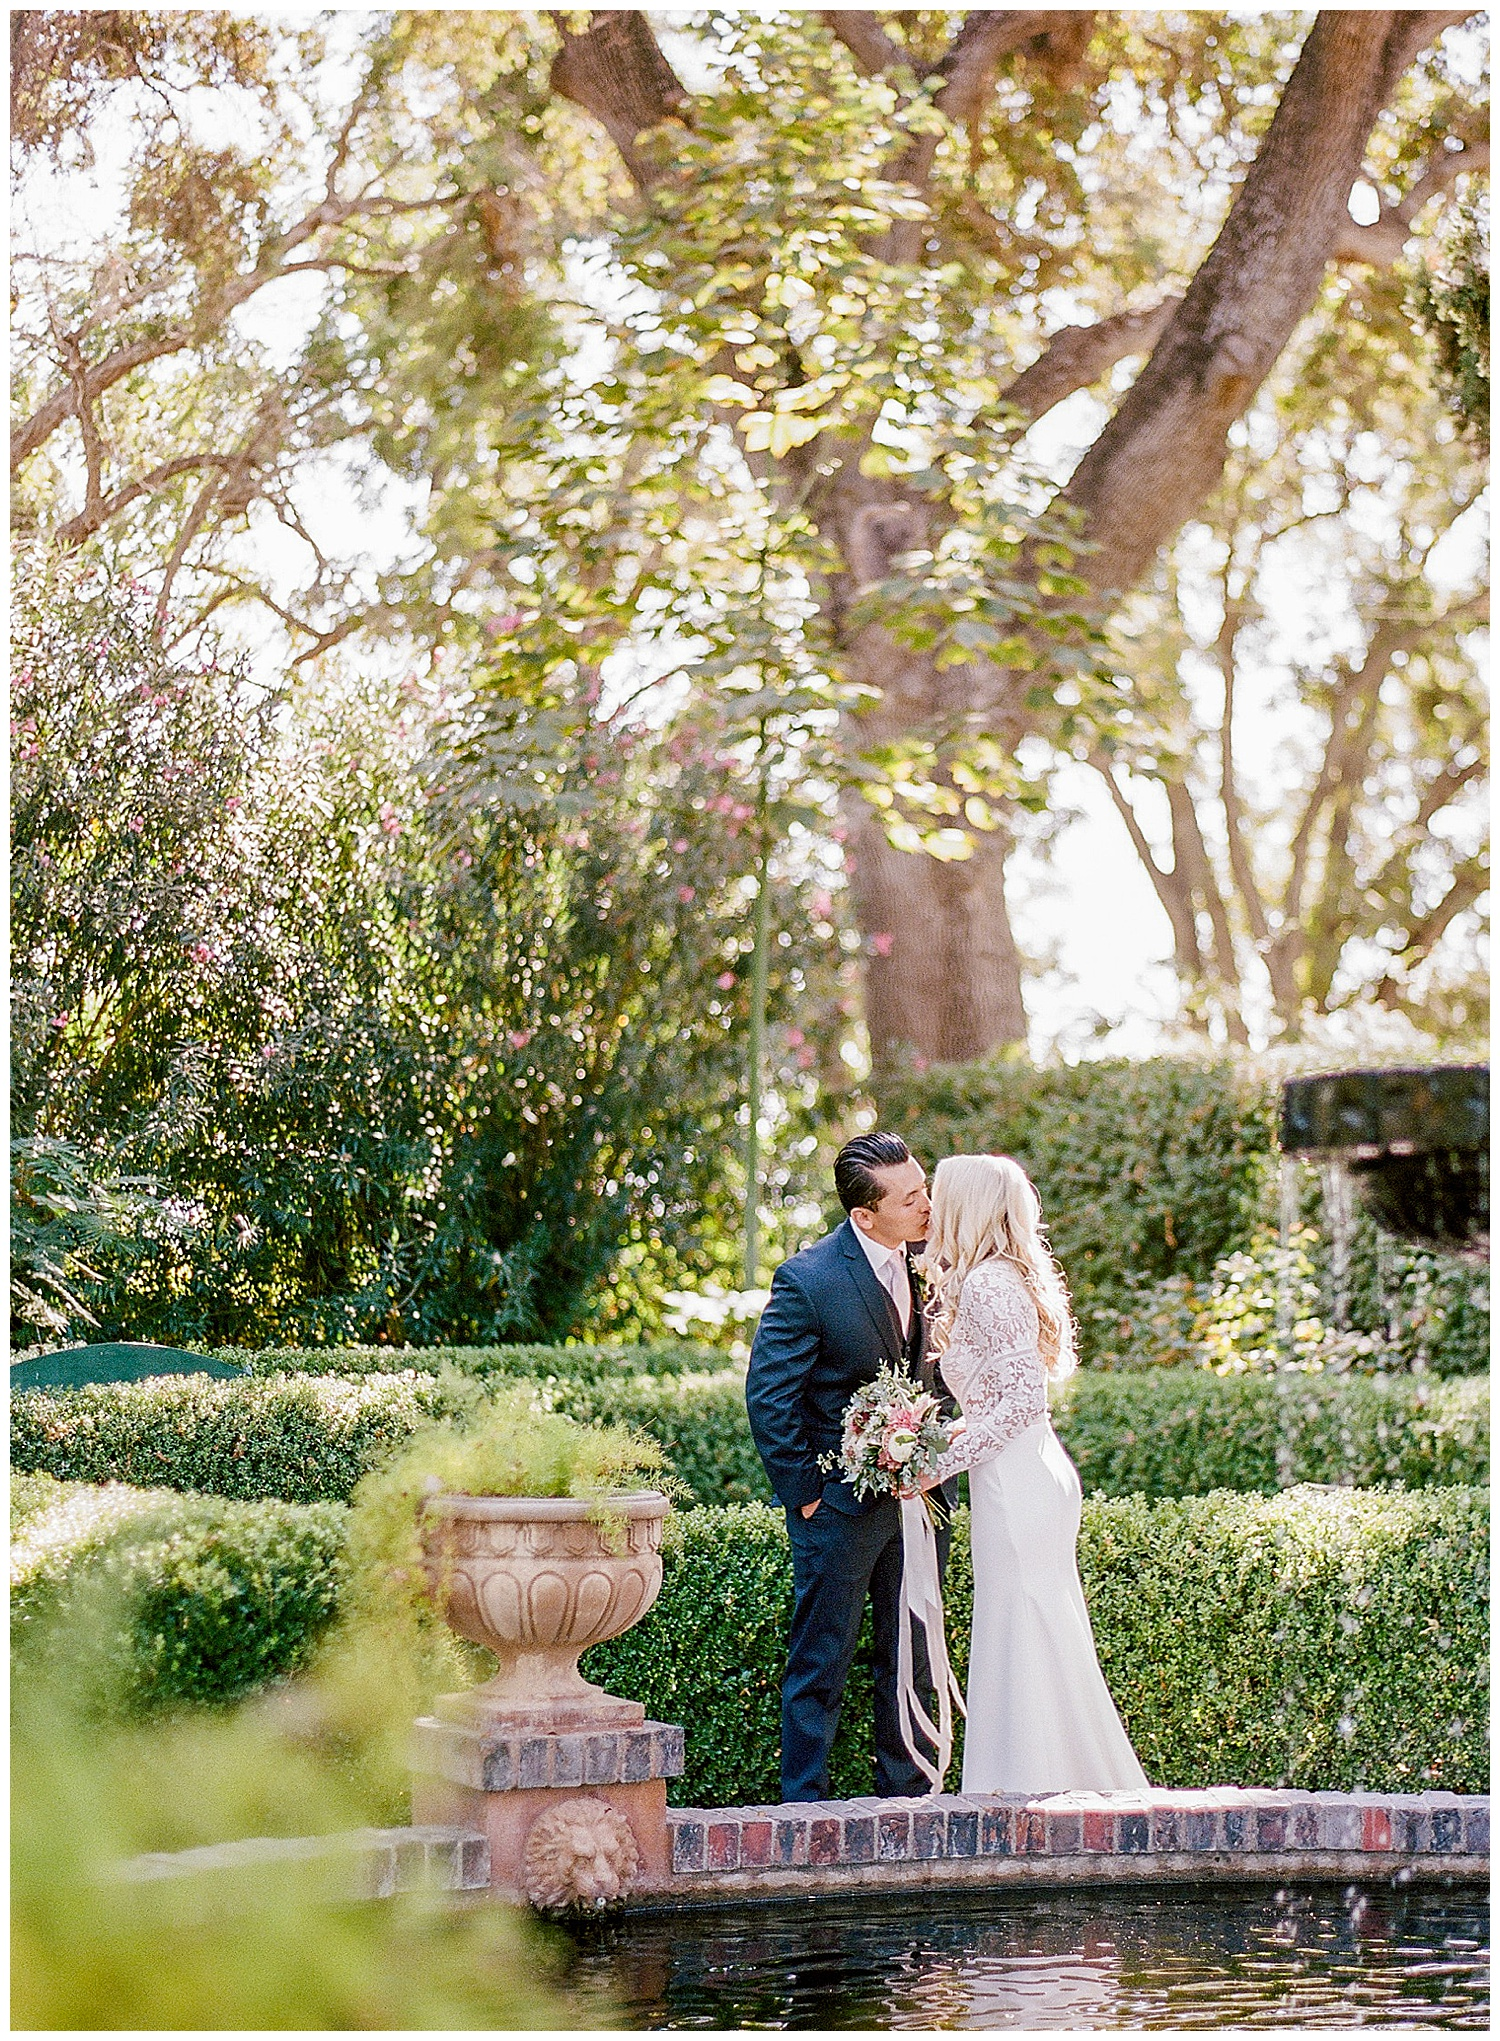 Janine_Licare_Photography_San_Francisco_Wedding_Photographer_Carneros_Tyge_Williams_Sonoma_Napa_0216.jpg